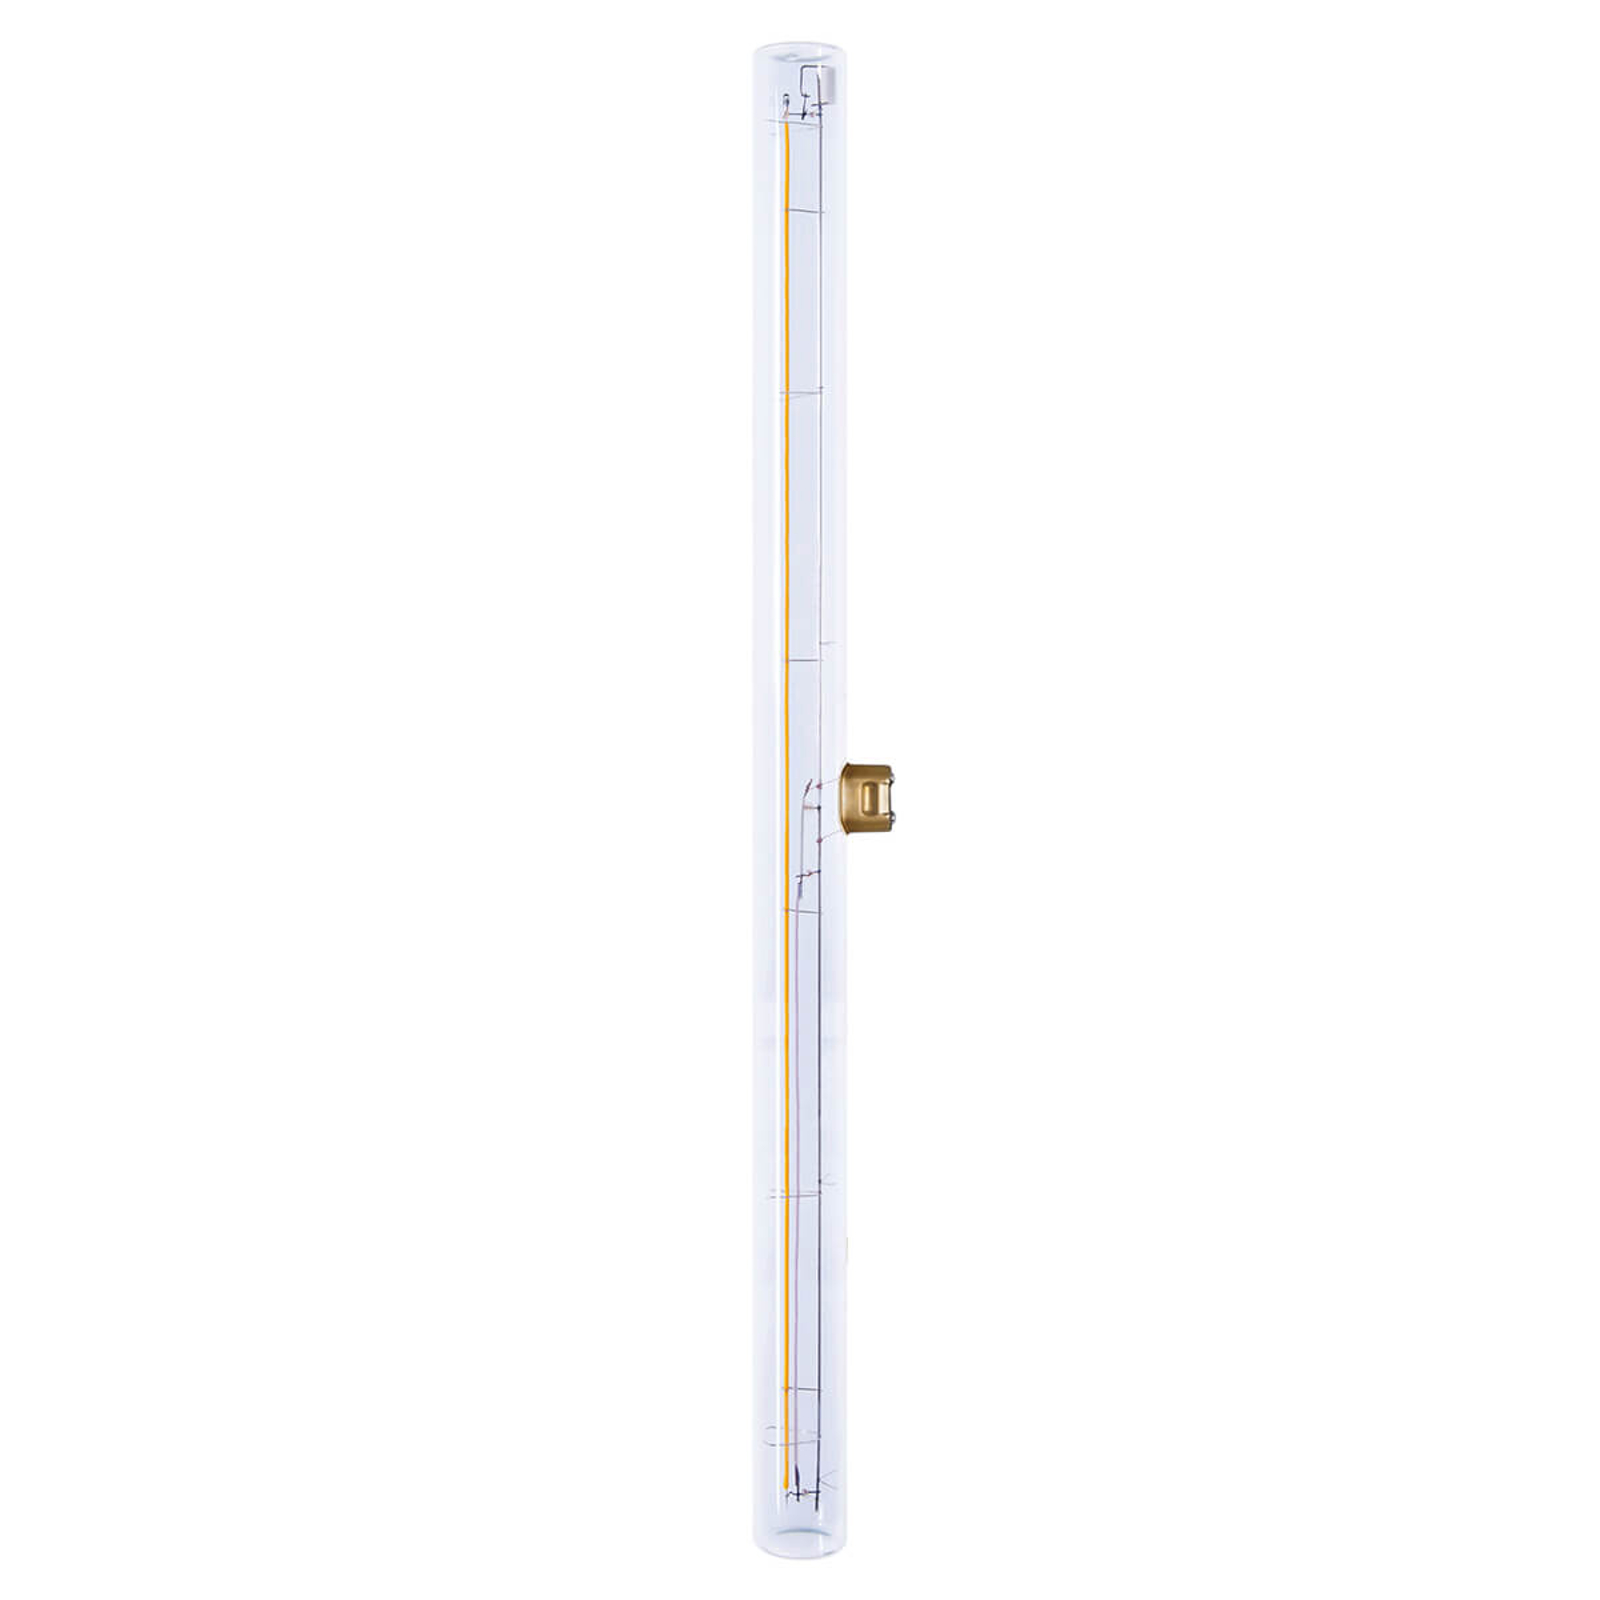 S14d 12W 922 LED-Linienlampe, 500 mm